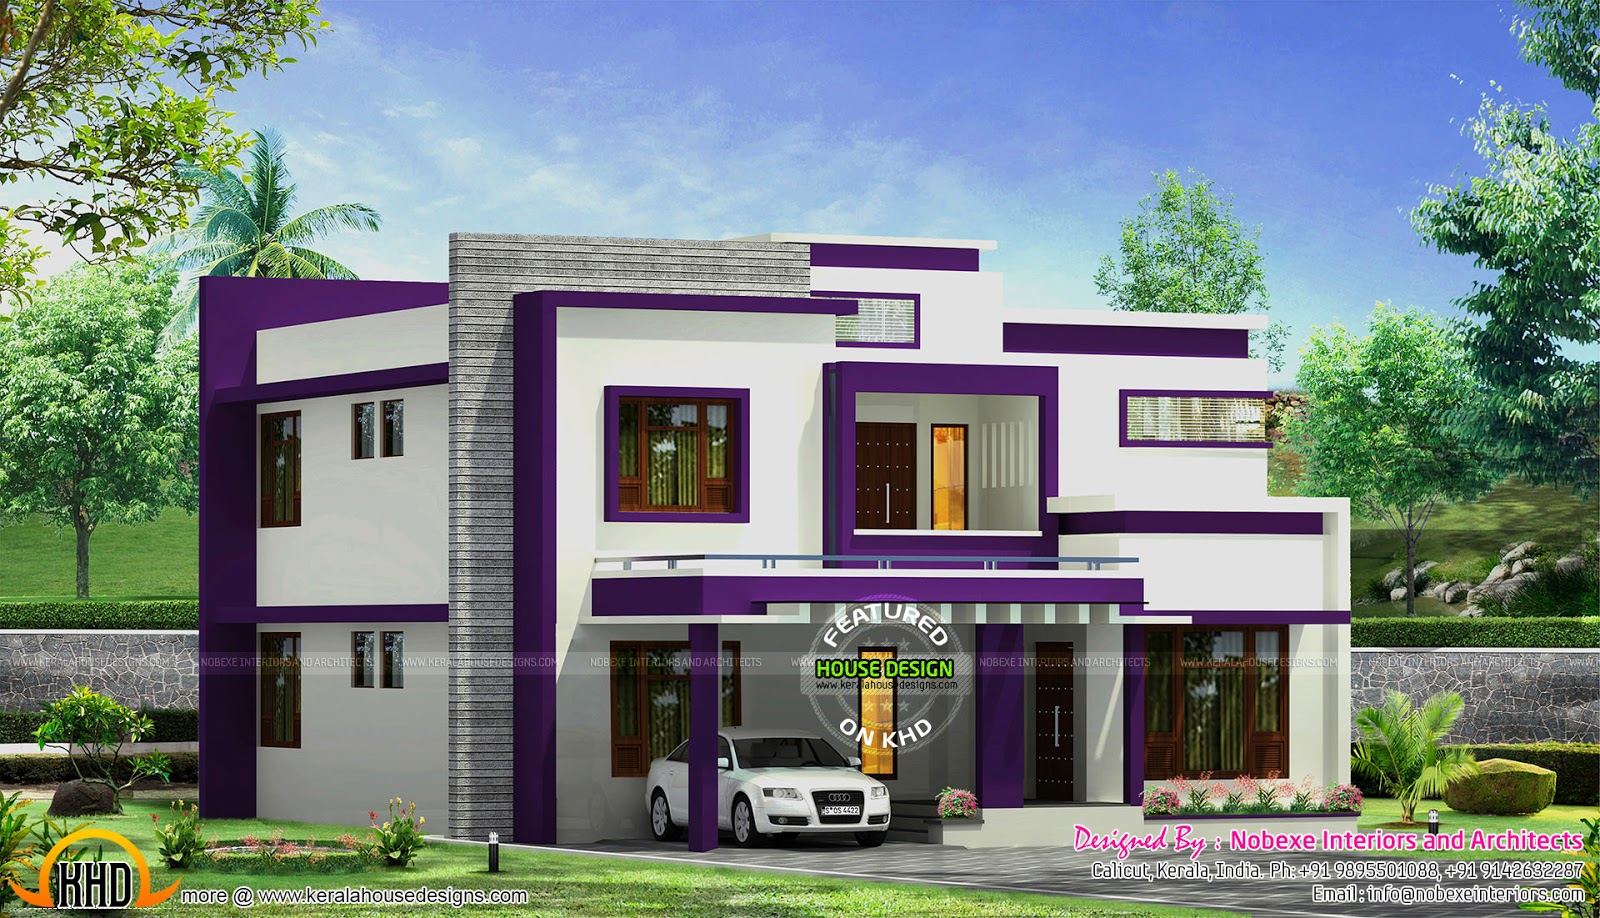 Contemporary home design by nobexe interiors kerala home for Best contemporary home designs